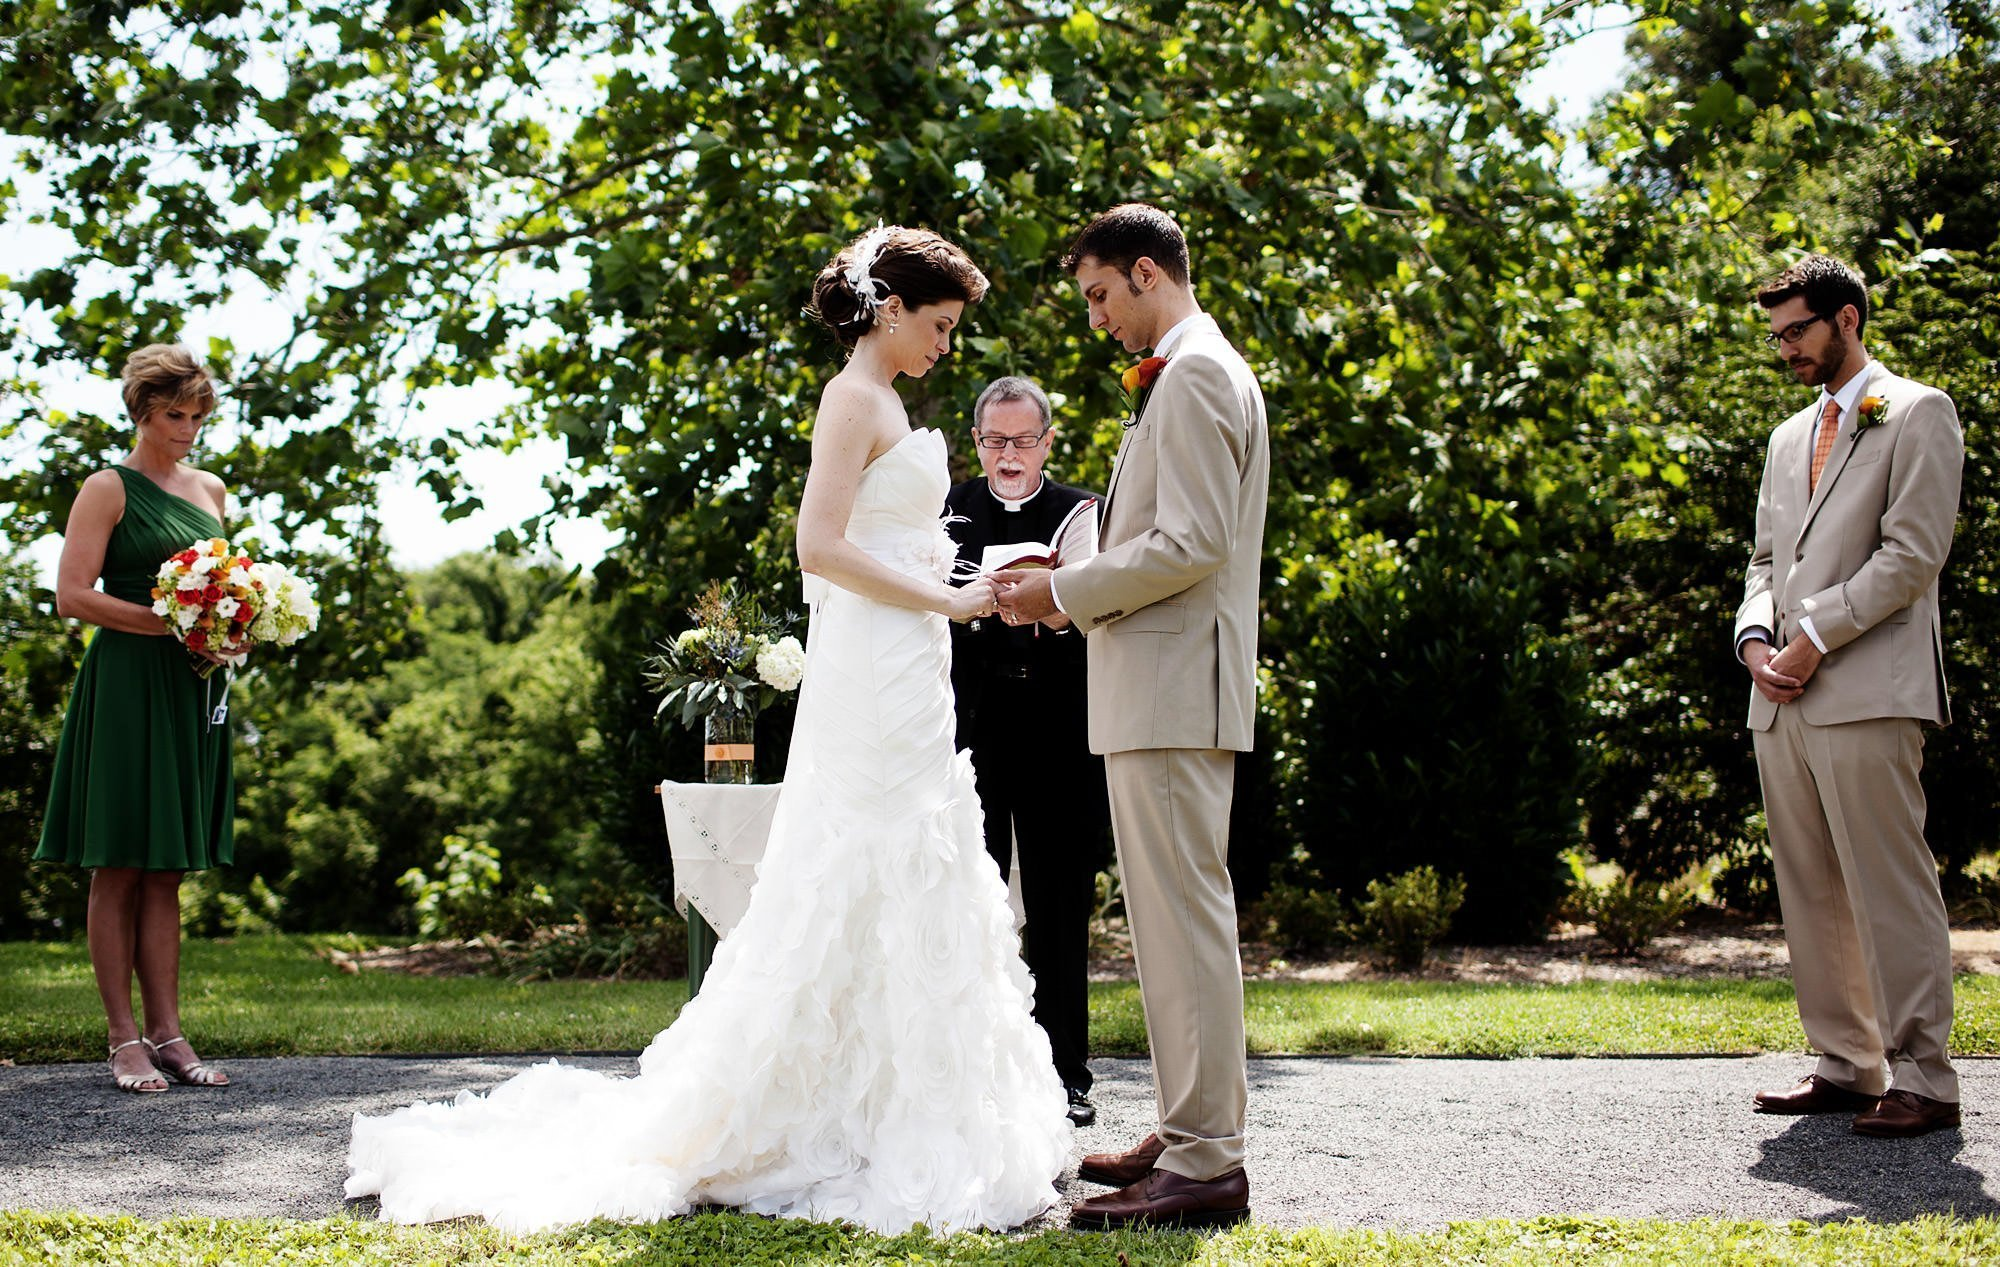 The bride and groom participate in their River Farm Alexandria Wedding ceremony.